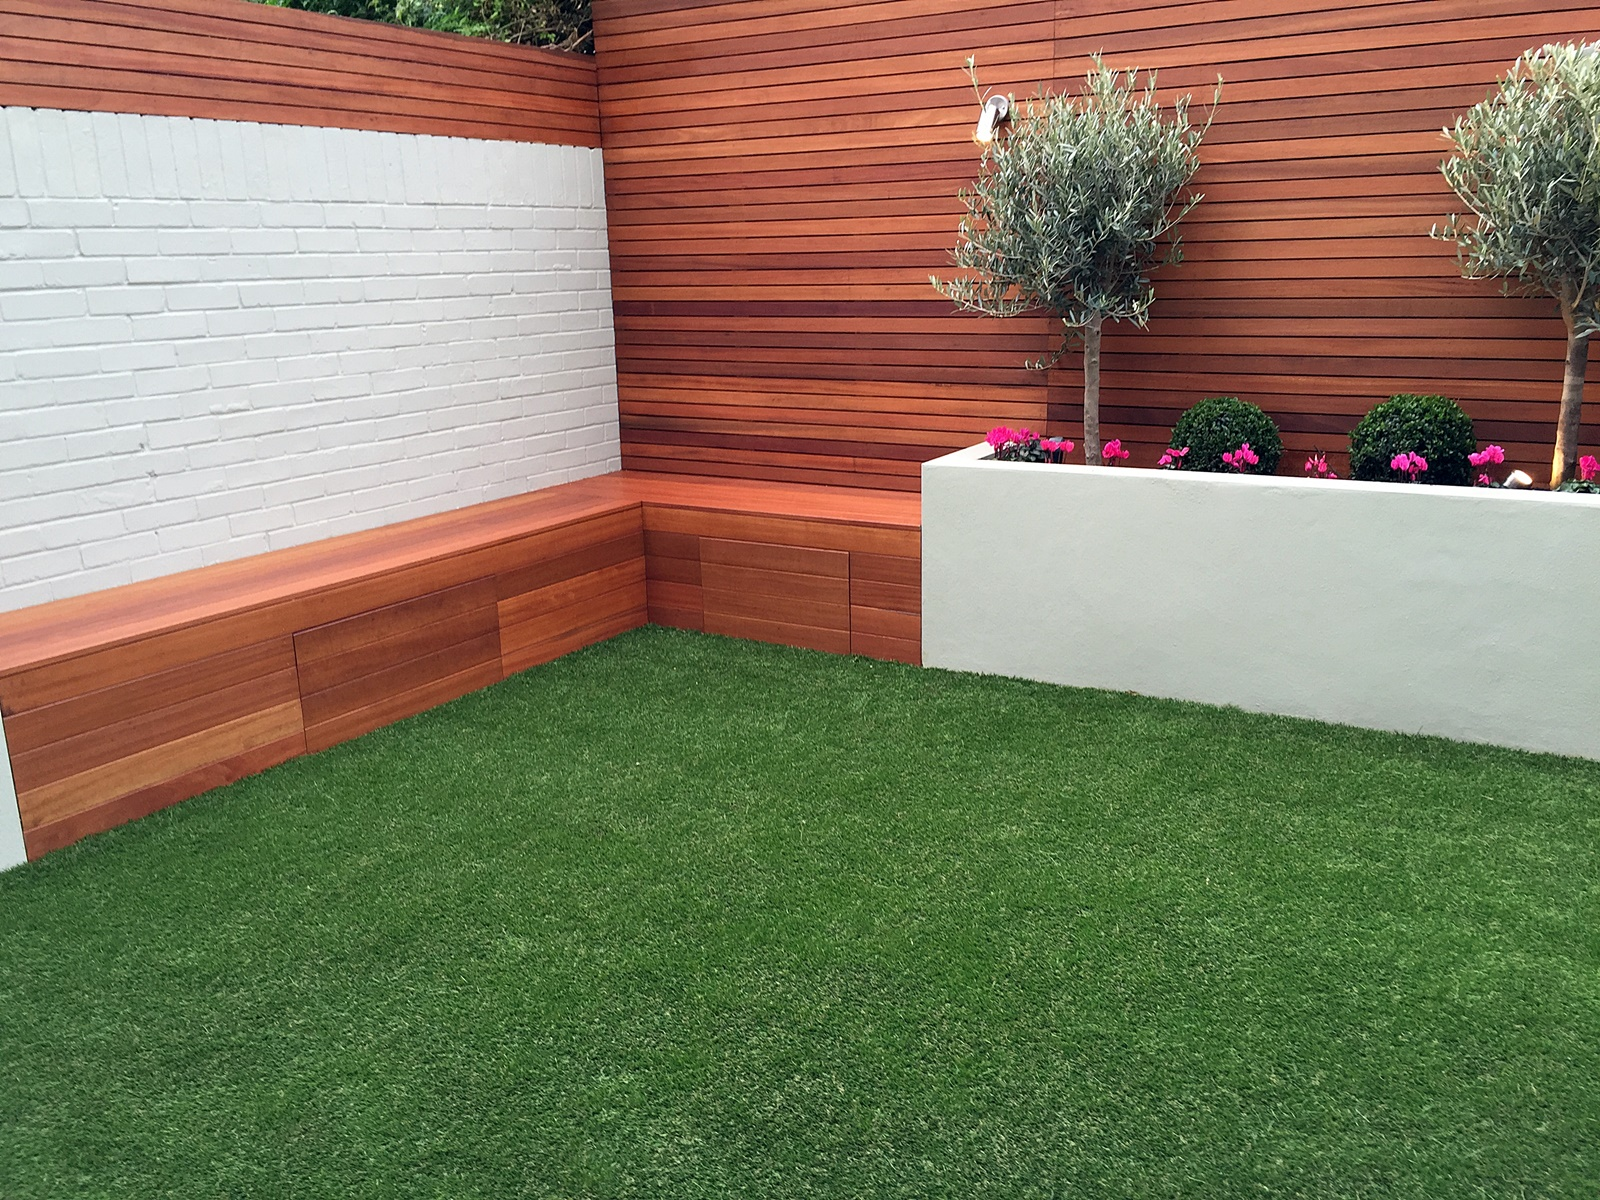 Simple modern court yard garden designer battersea fulham for Basic small garden design